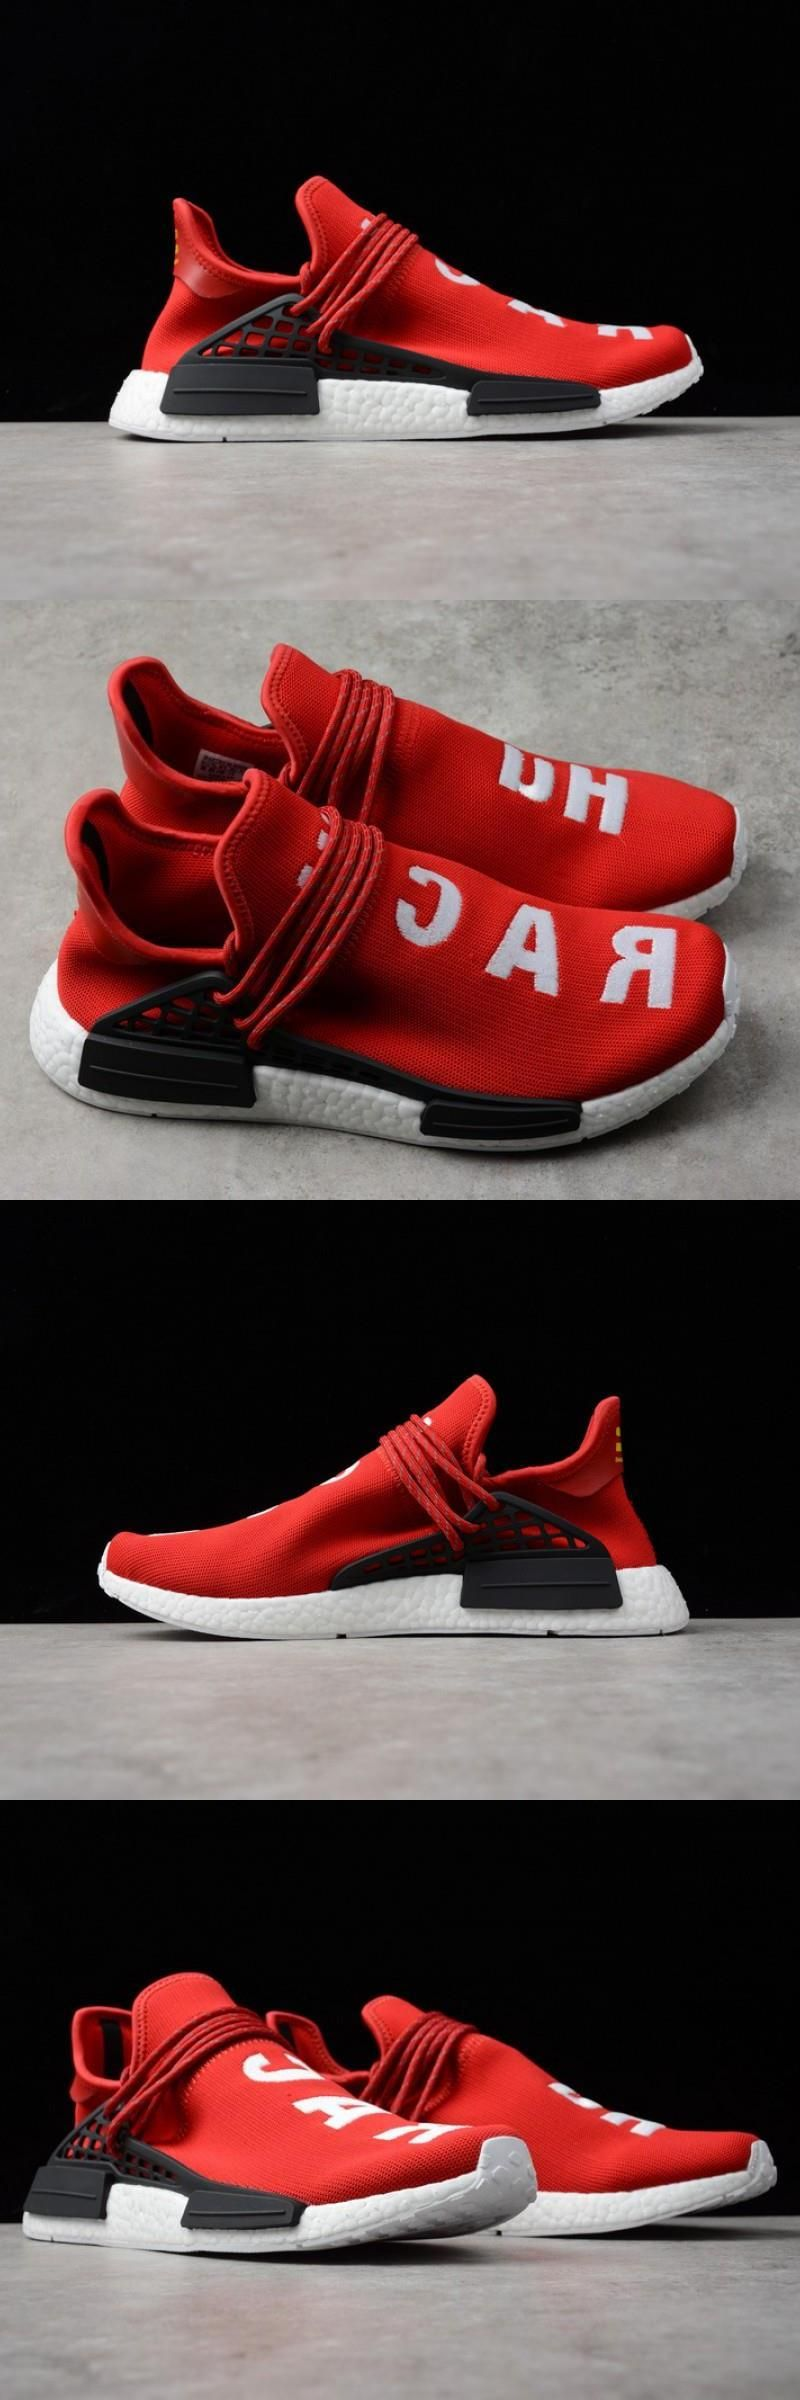 2020 Top Fashion Hot Sale Adidas Pharrell Nmd Human Race Red Bb0616 Solokicks     Best Online Sneaker Shop Where To Buy Good Quality Replica Adidas Pharrell Nmd Human Race Red Bb0616 Sports Men And Women Shoes At Low Cost